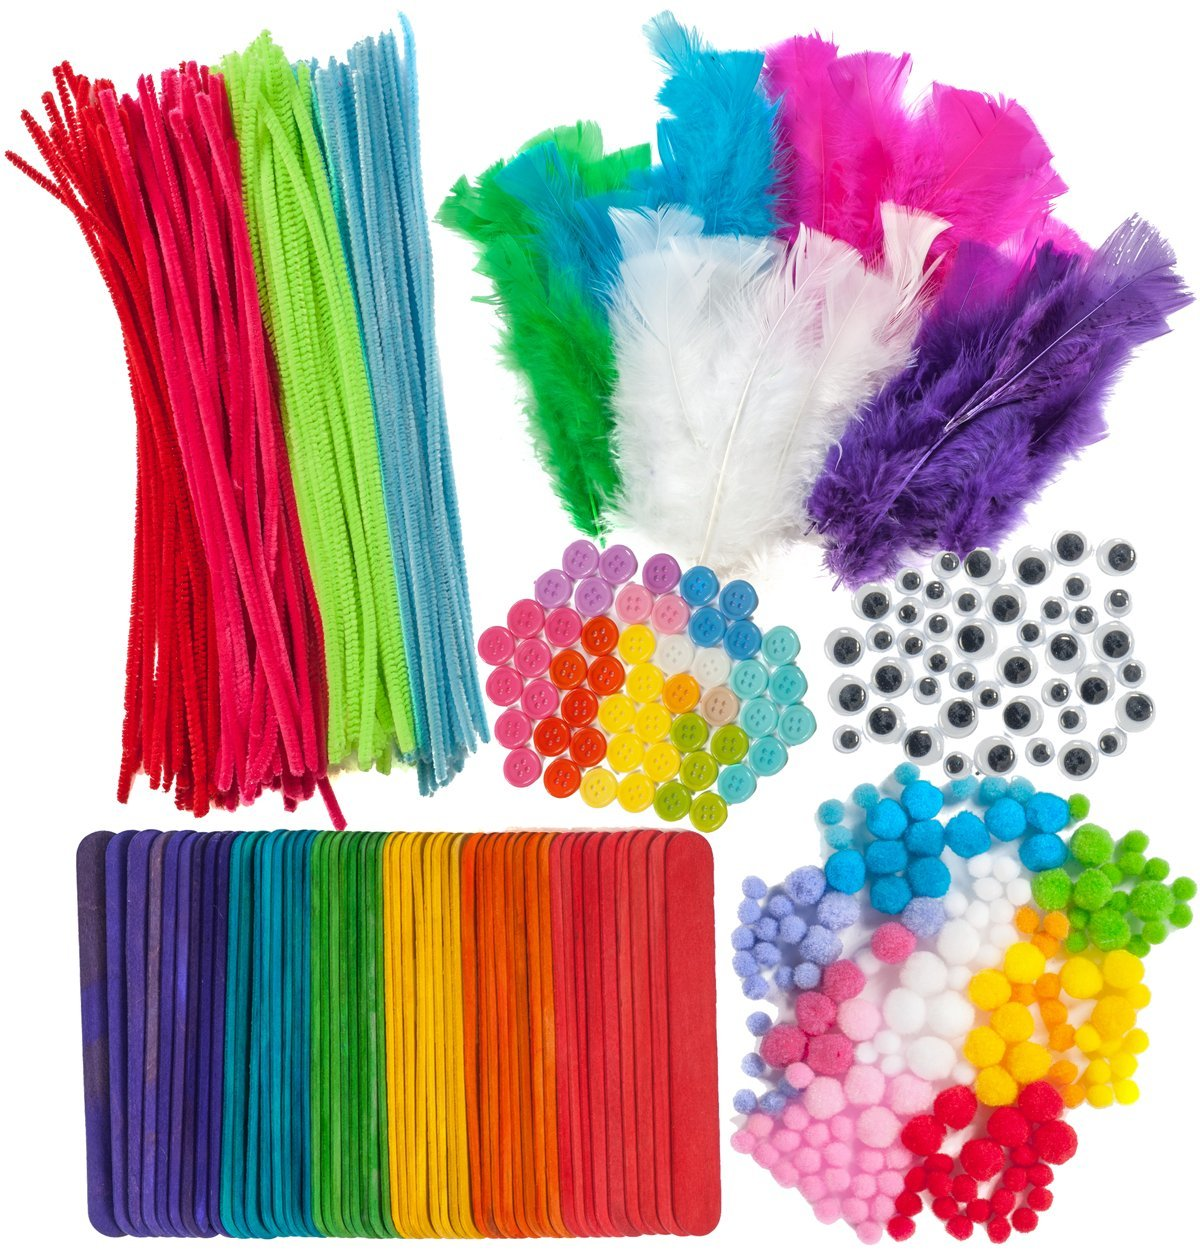 Chinabrands Com Dropshipping Wholesale Cheap 600 Piece Crafts